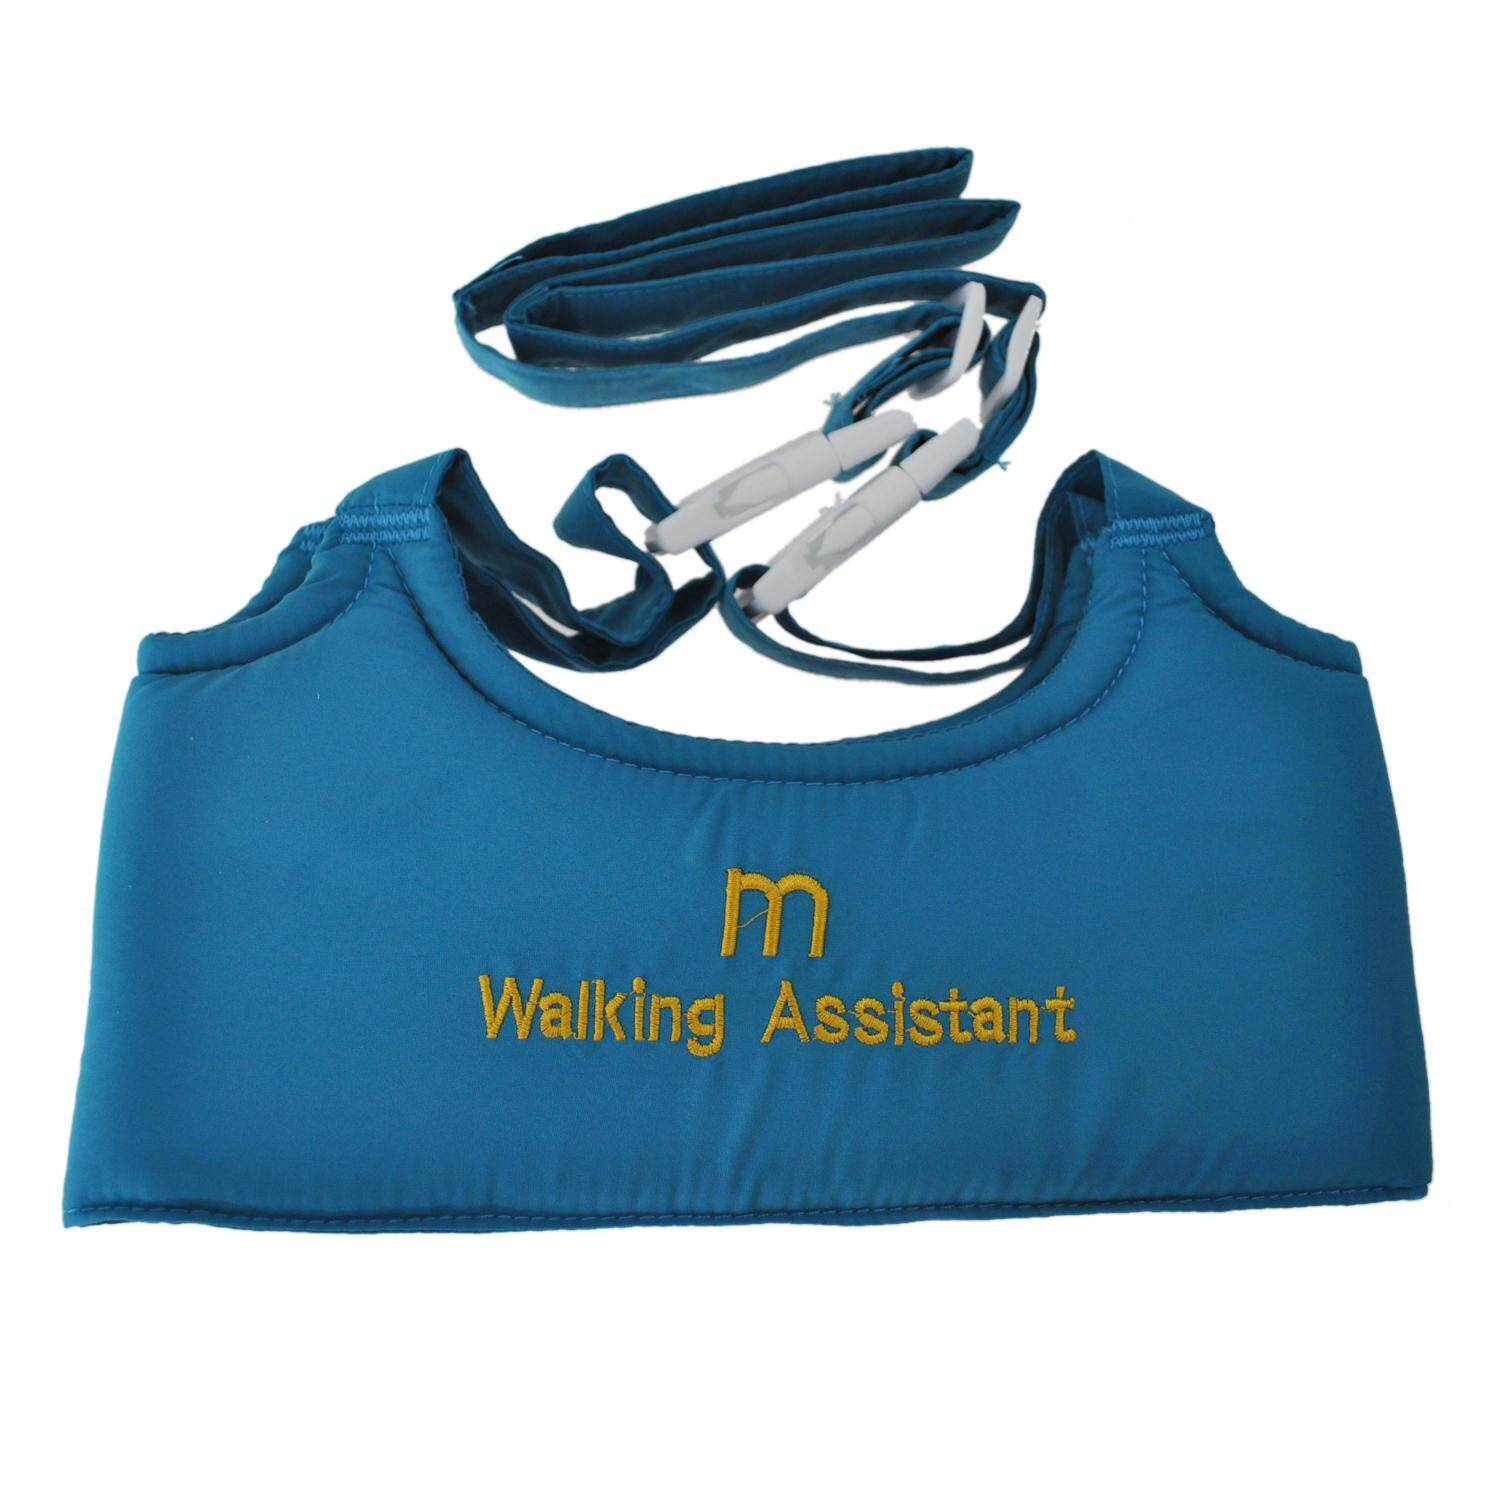 Baby Toddler Walking Assistant Learning Walk Safety Reins Harness walker Wings - blue - intl image on snachetto.com